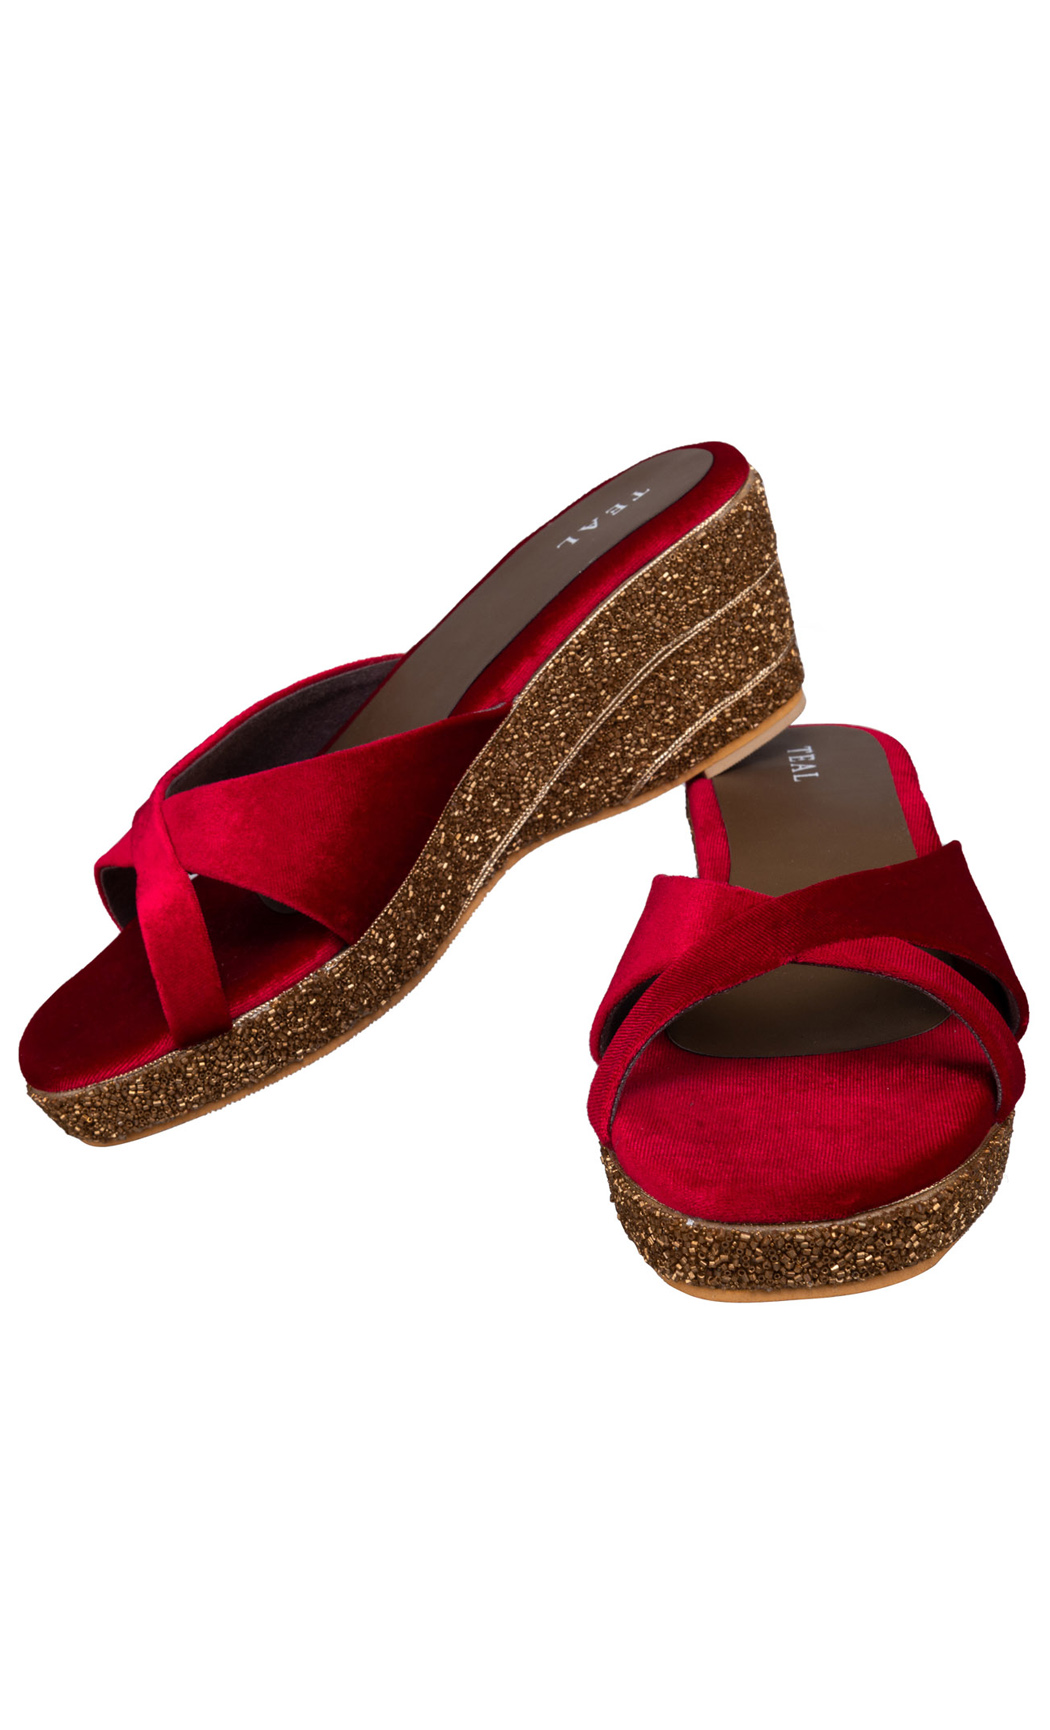 Red Luxe Wedges - Buy Online